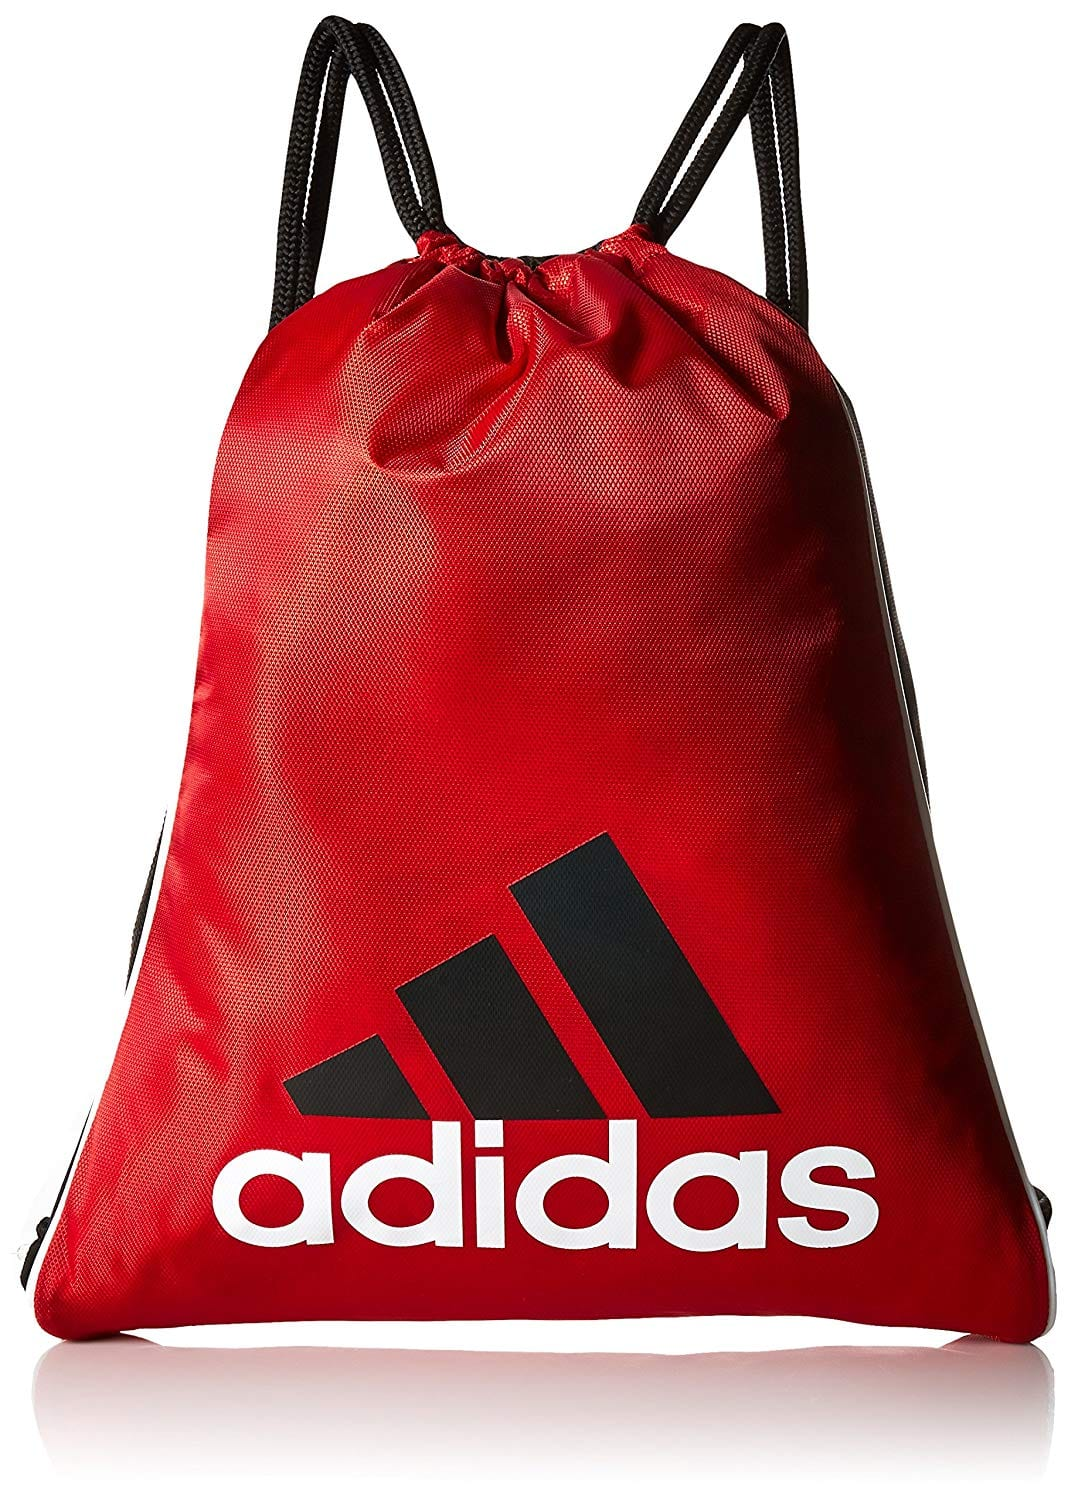 Amazon: Adidas red/black sackpack $5.38 - Addon only